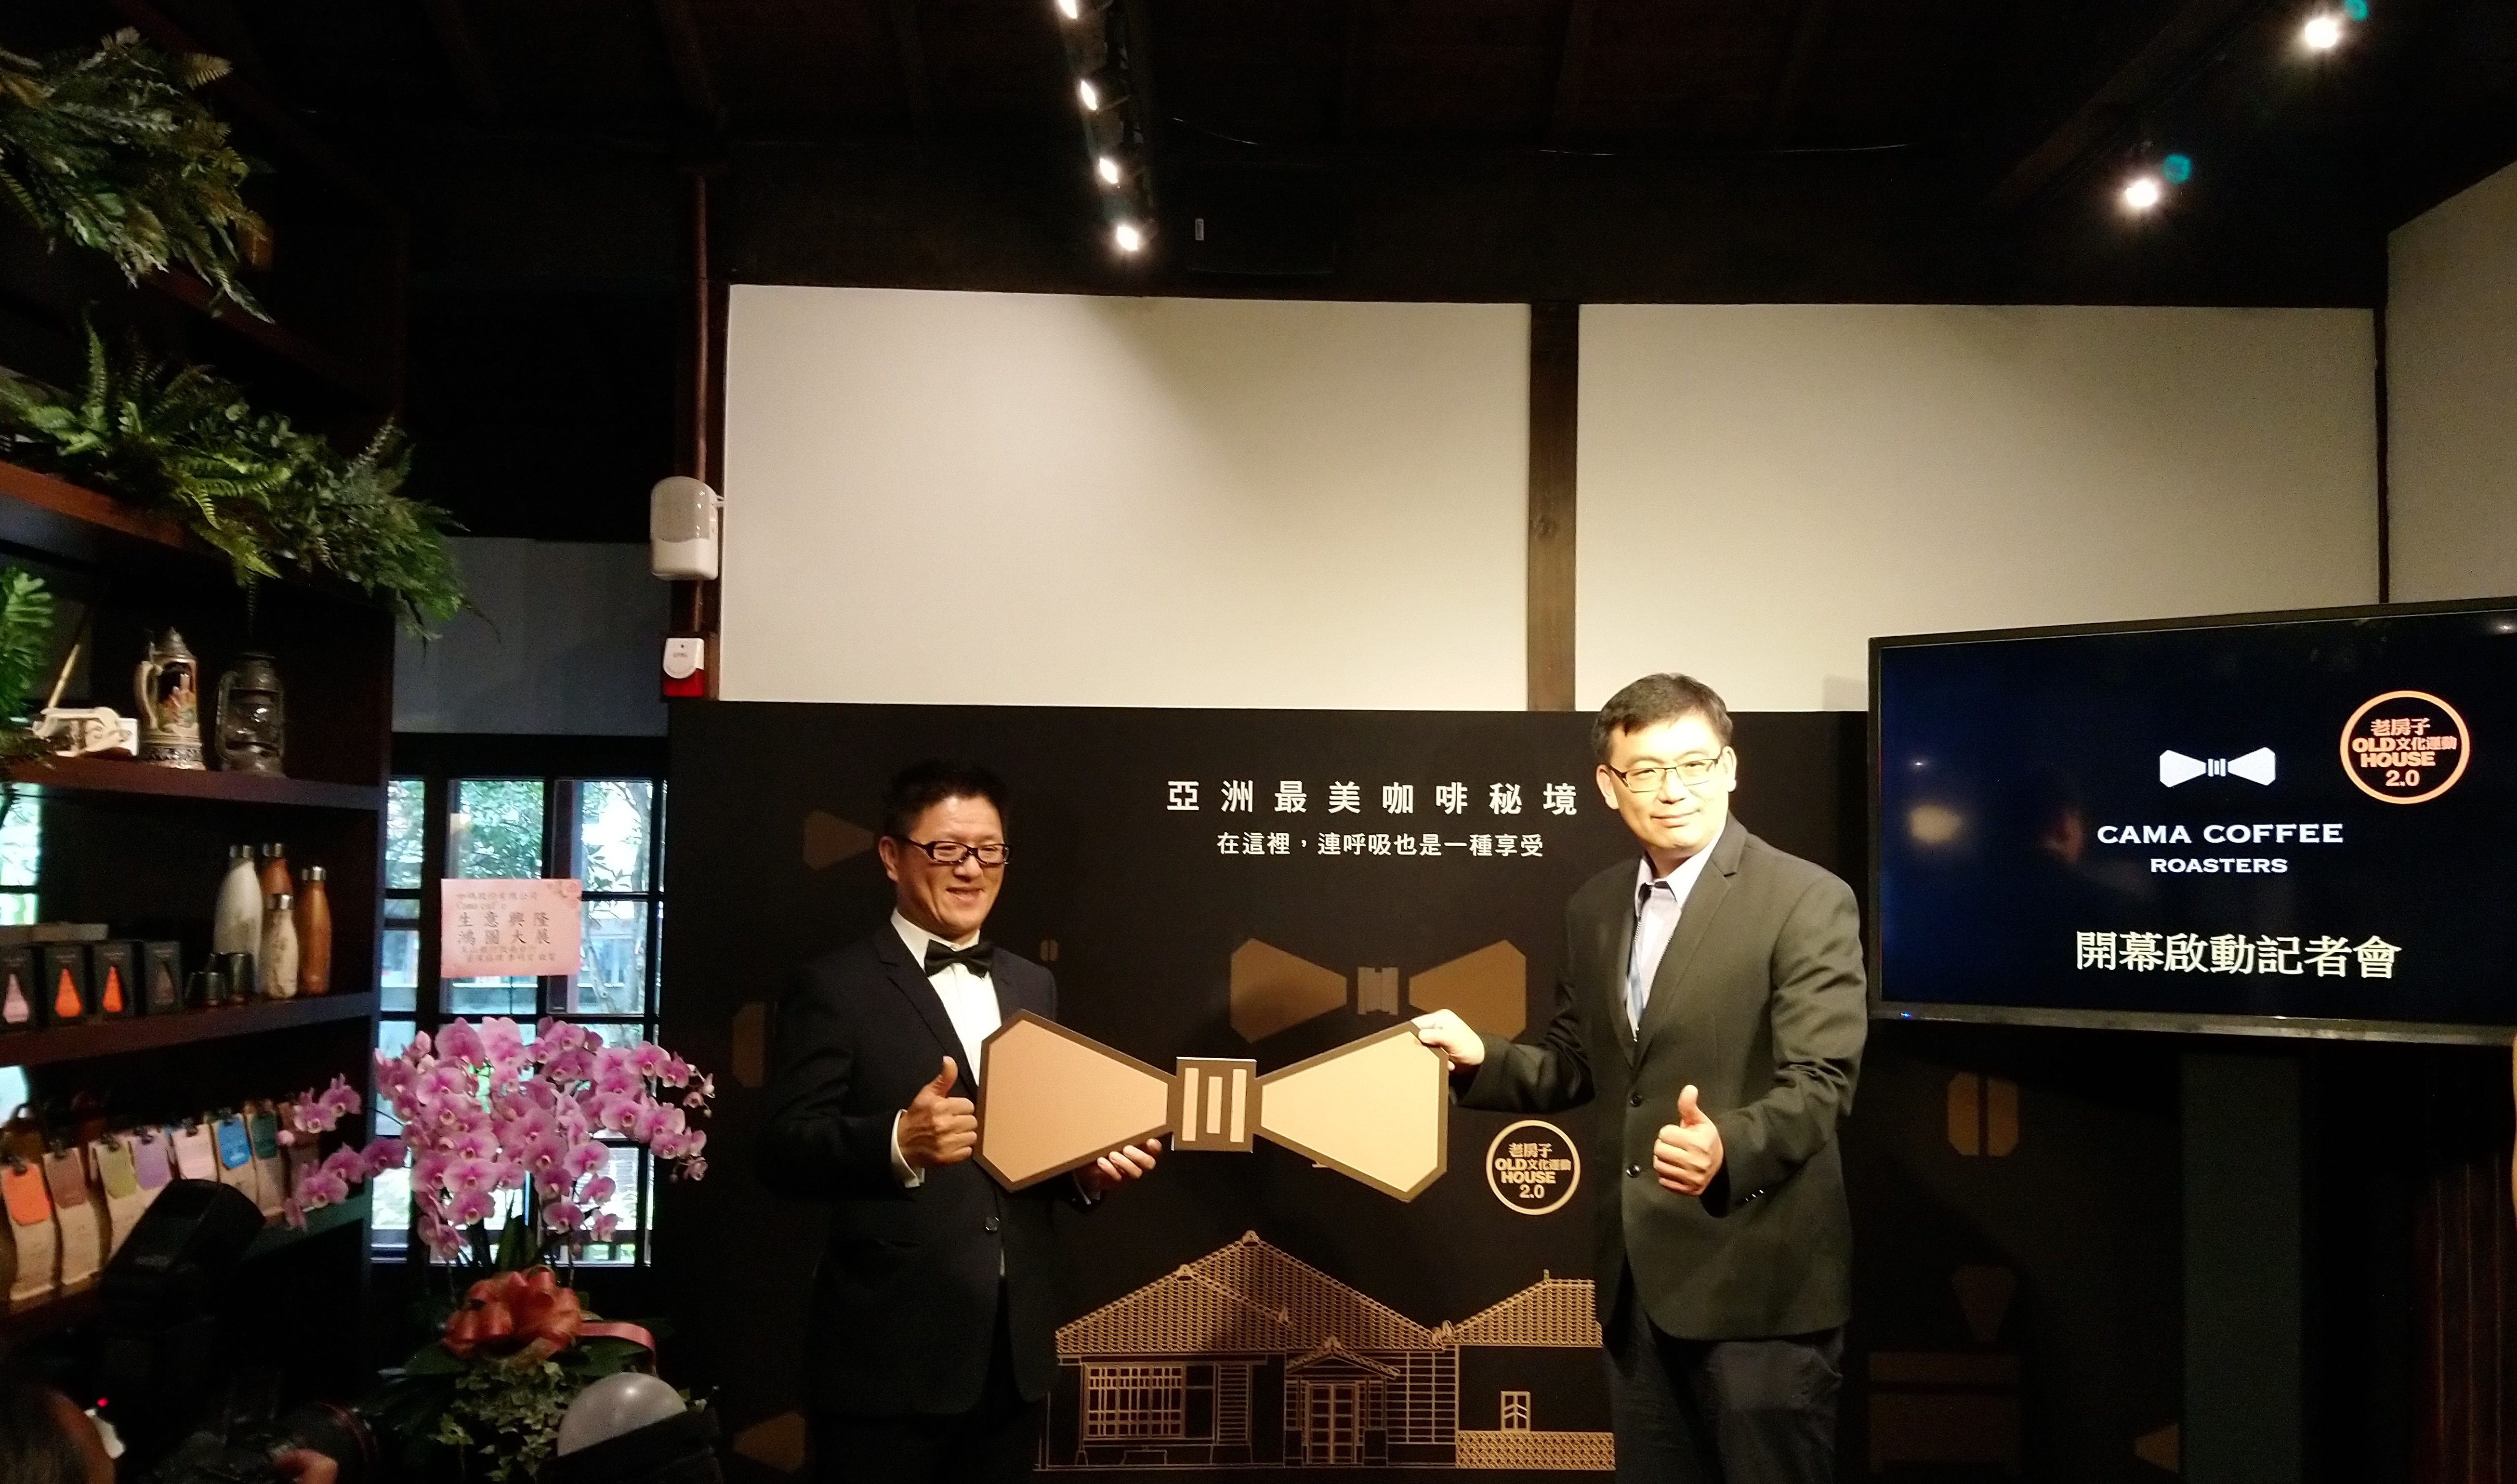 DOCA Deputy Commissioner Tian Wei (田瑋), right, and He Binglin (何炳霖), the President of Cama Coffee Roasters, host the opening. together.